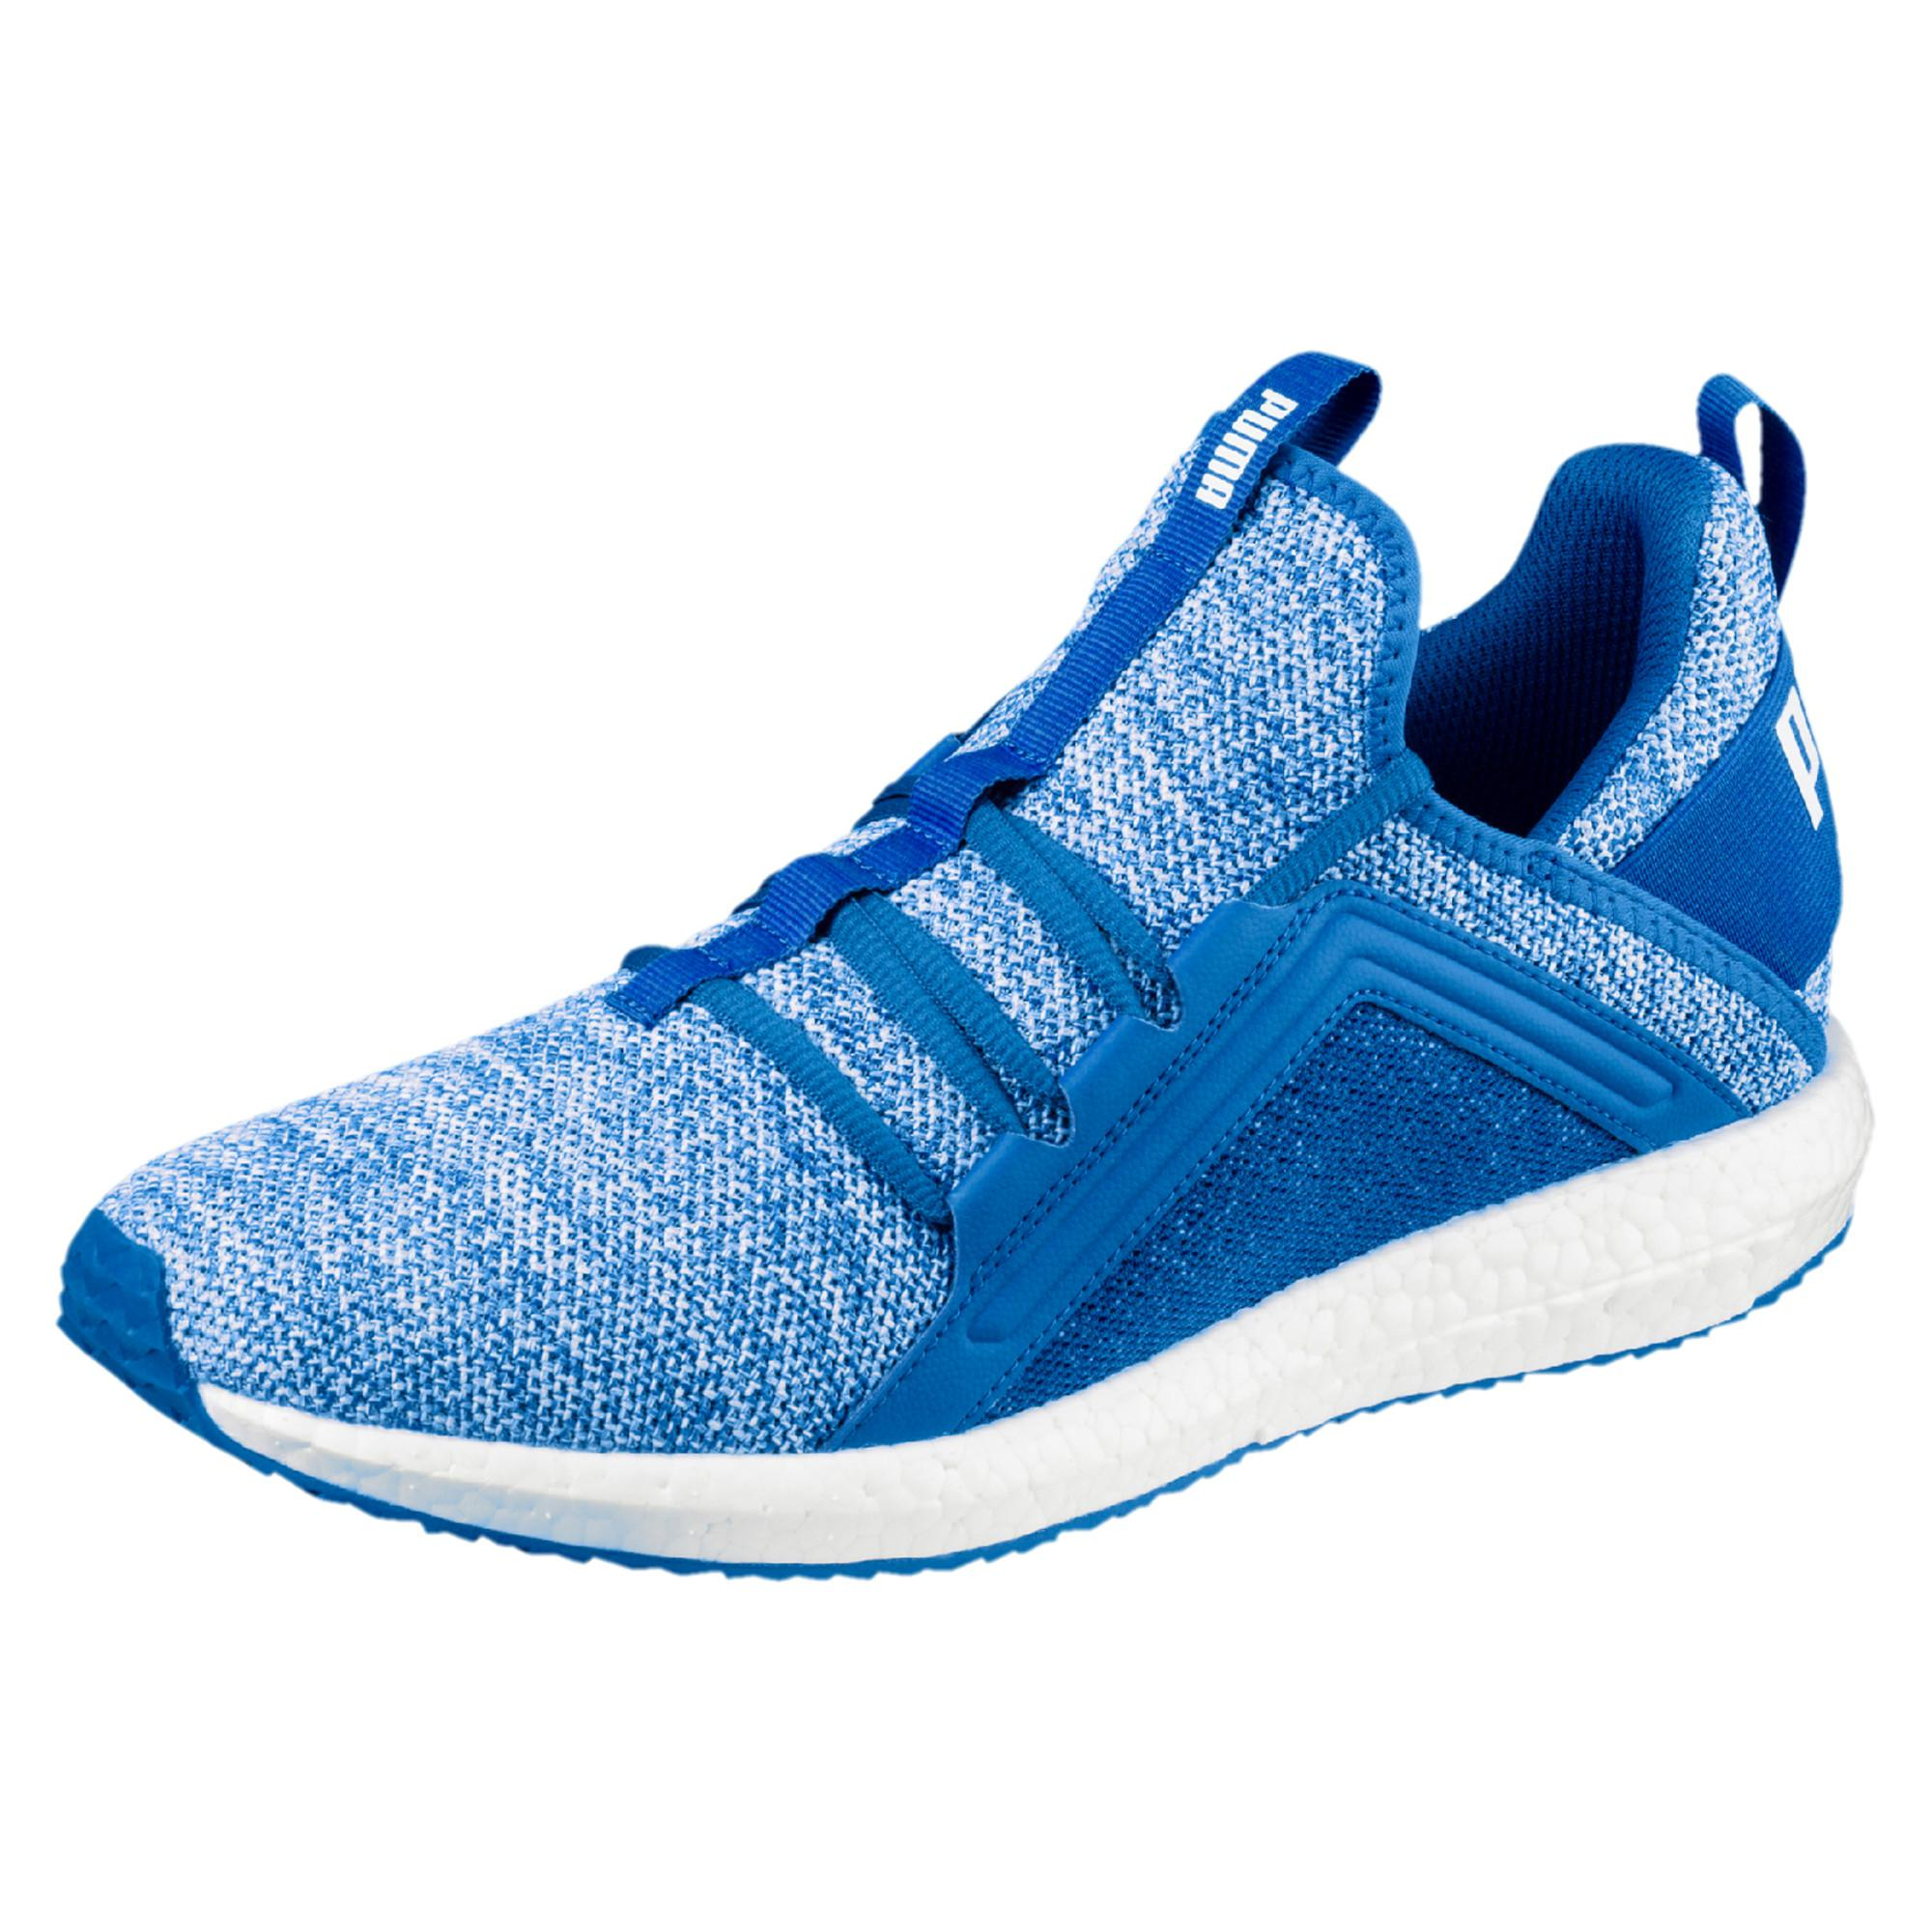 3e4e2c303cab Lyst - Puma Mega Nrgy Knit Men s Trainers in Blue for Men